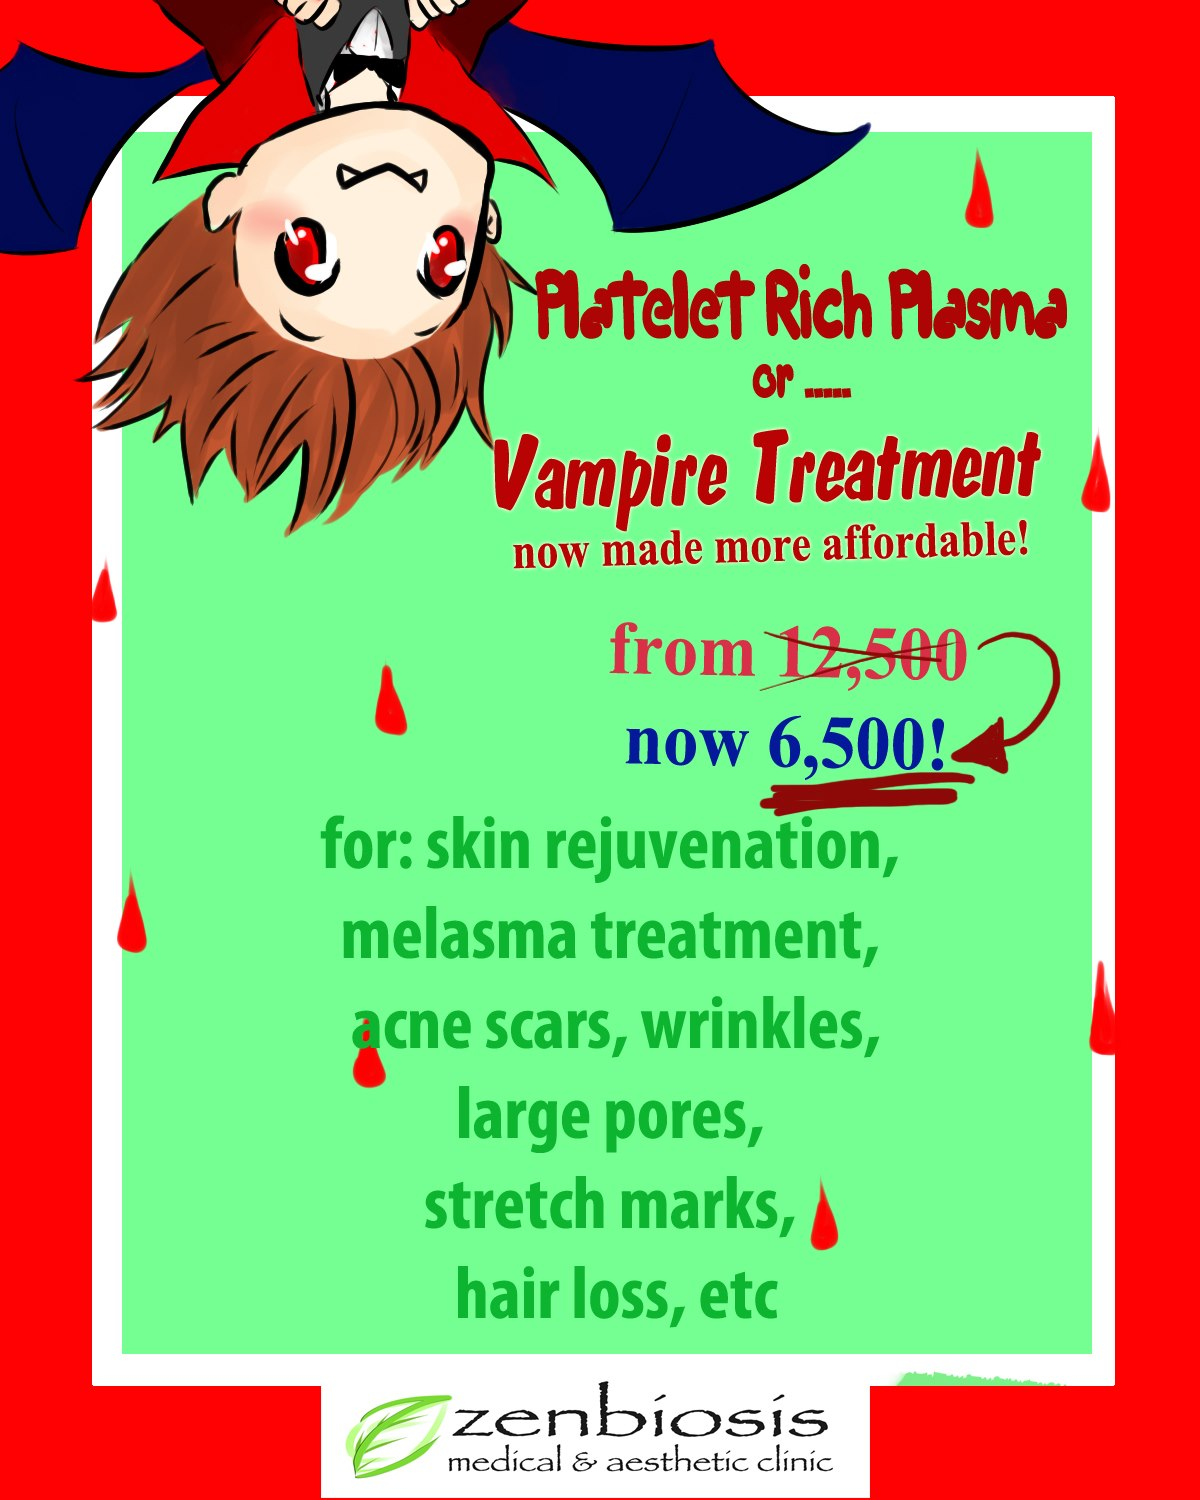 zenbiosis-prp-vampire-treatment